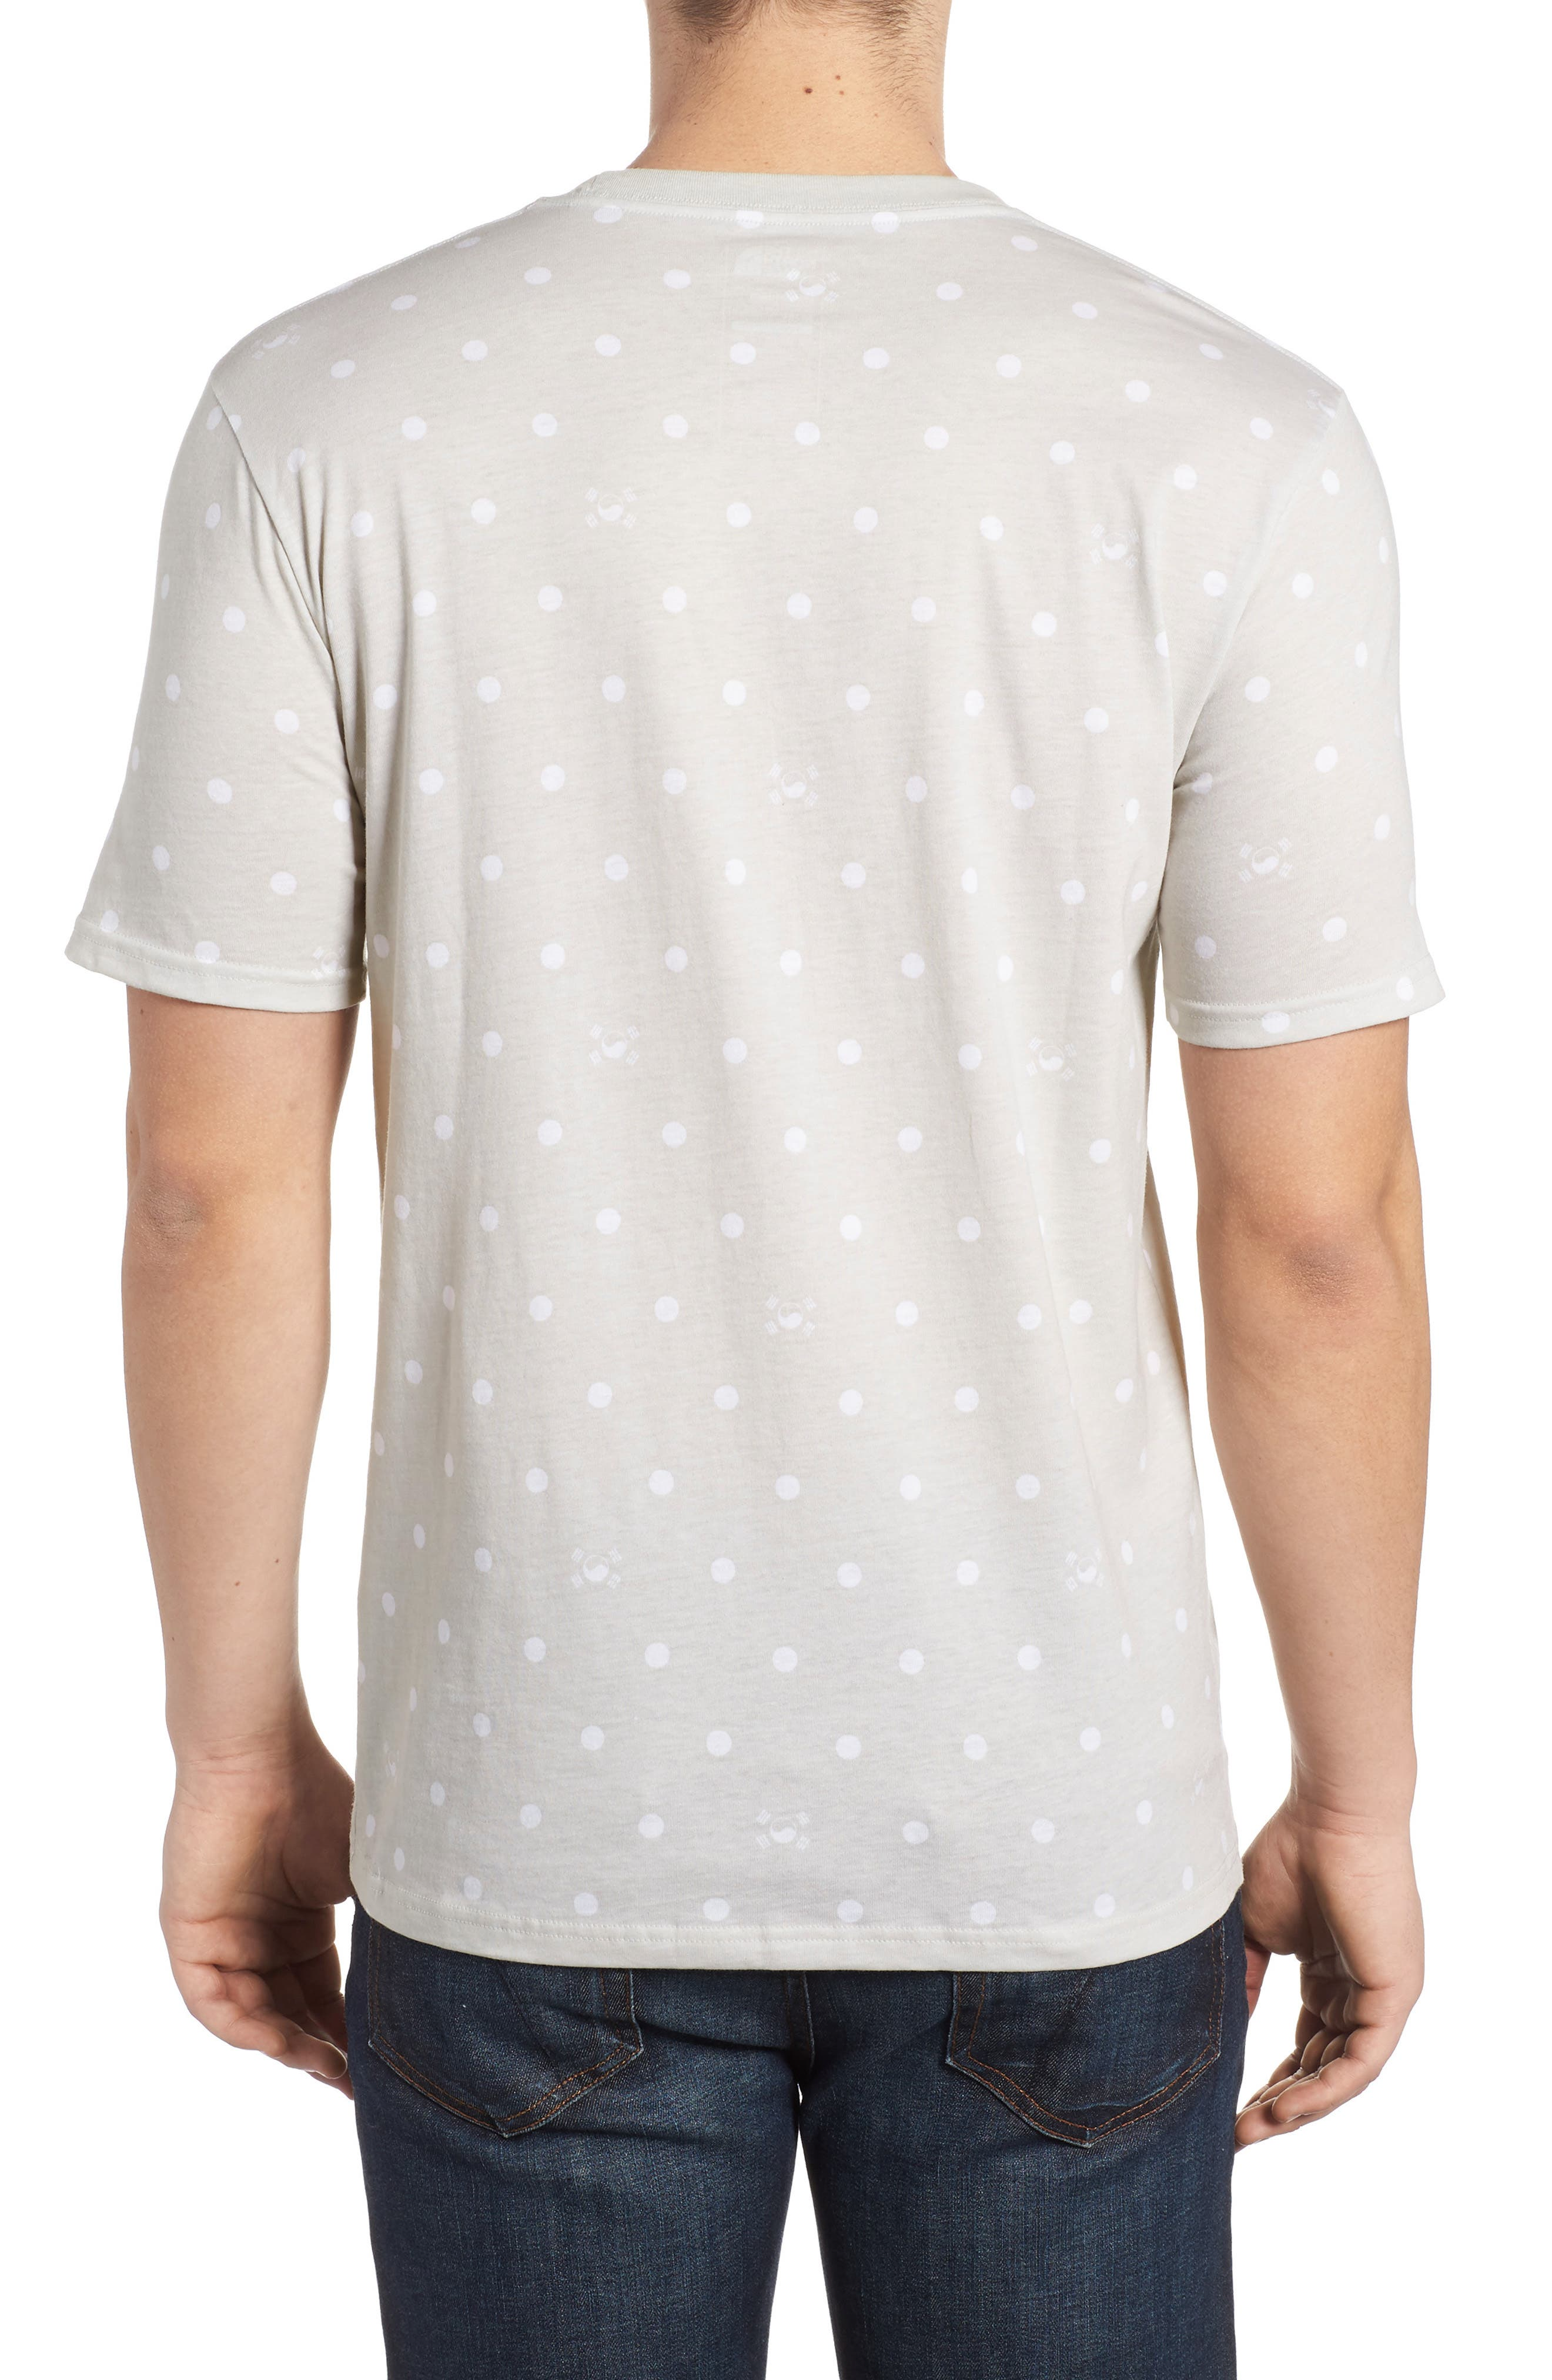 International Collection Star Print T-Shirt,                             Alternate thumbnail 2, color,                             030